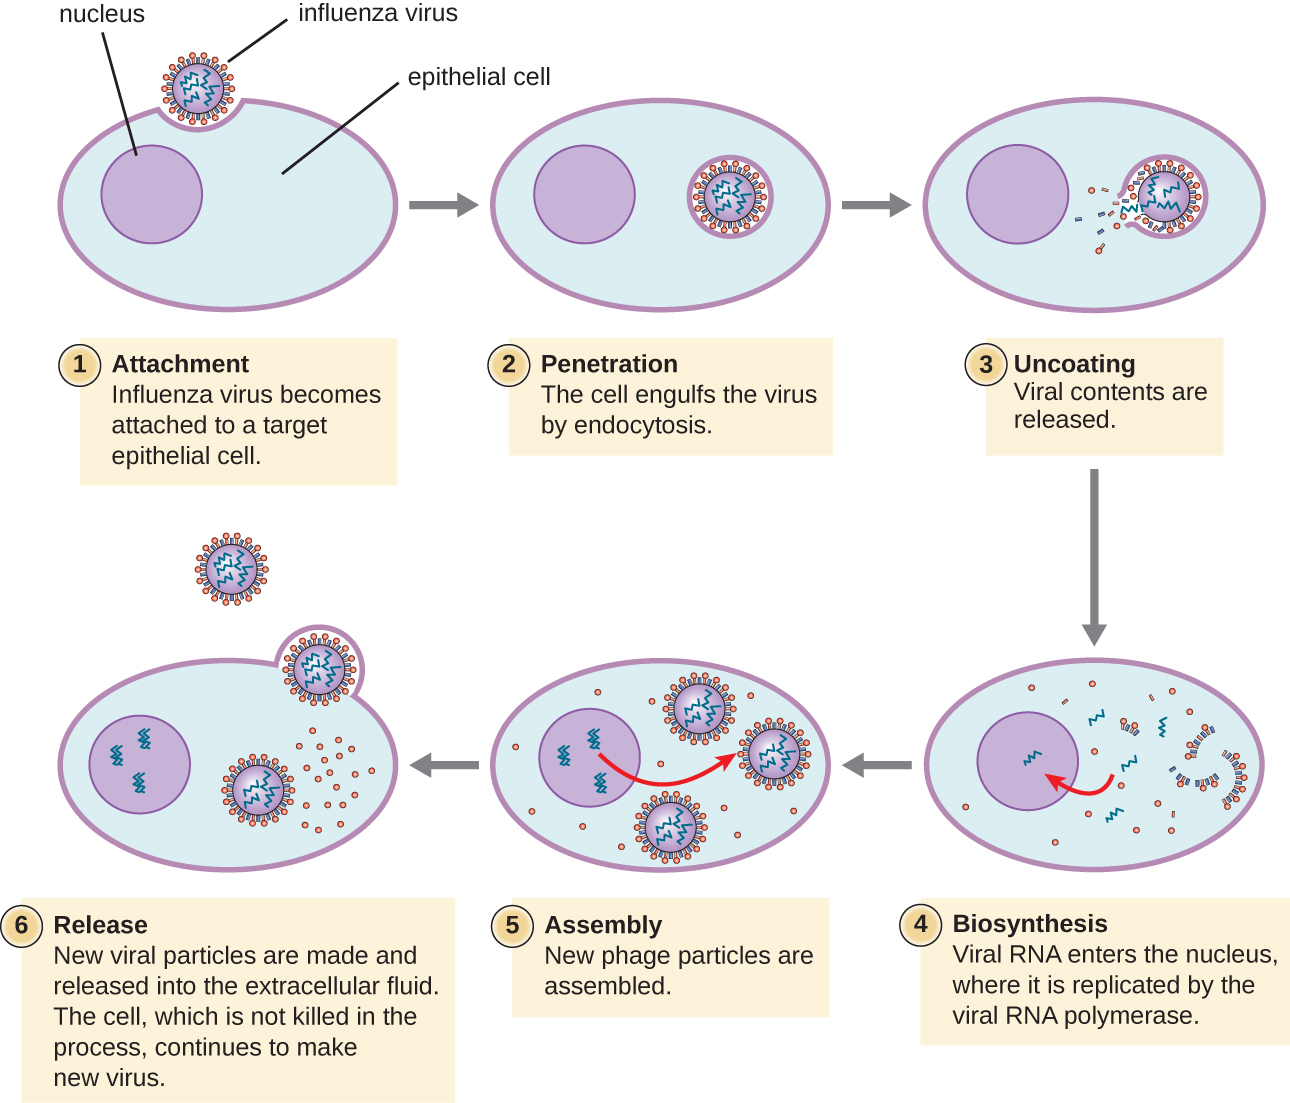 Steps of influenza infection. Step 1 is attachment when the influenza virus becomes attached to a target epithelial cell. This image shows a spherical virus binding to the surface of a host cell. Step 2 is penetration when the cell engulfs the virus by endocytosis; this shows the virus within a vacuole. Step 3 is uncoating when the viral contents are released; the image shows the virus being released from the vacuole. Step 4 is biosynthesis when the viral RNA enters the nucleus where it is replicated by RNA polymerase. Step 5 is assembly when the new phage particles are assembled. Step 6 is release when new viral particles are made and released into the extracellular fluid. The cell, which is not killed in the process continues to make new viruses.